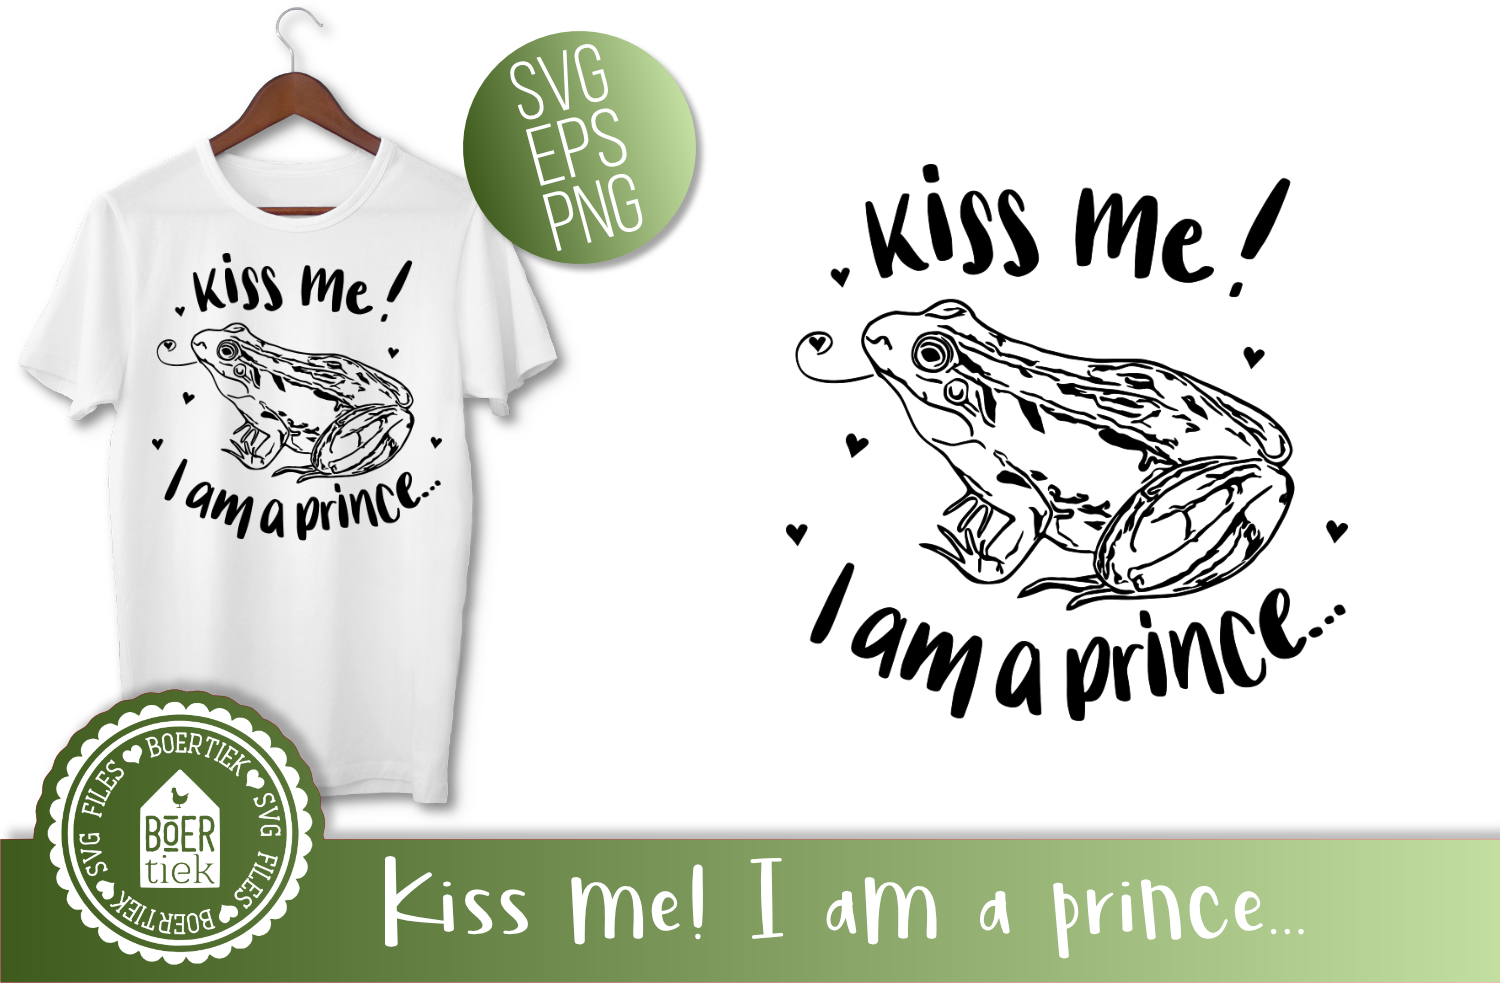 Frog - Kiss me! I am a prince, SVG cutting file example image 2